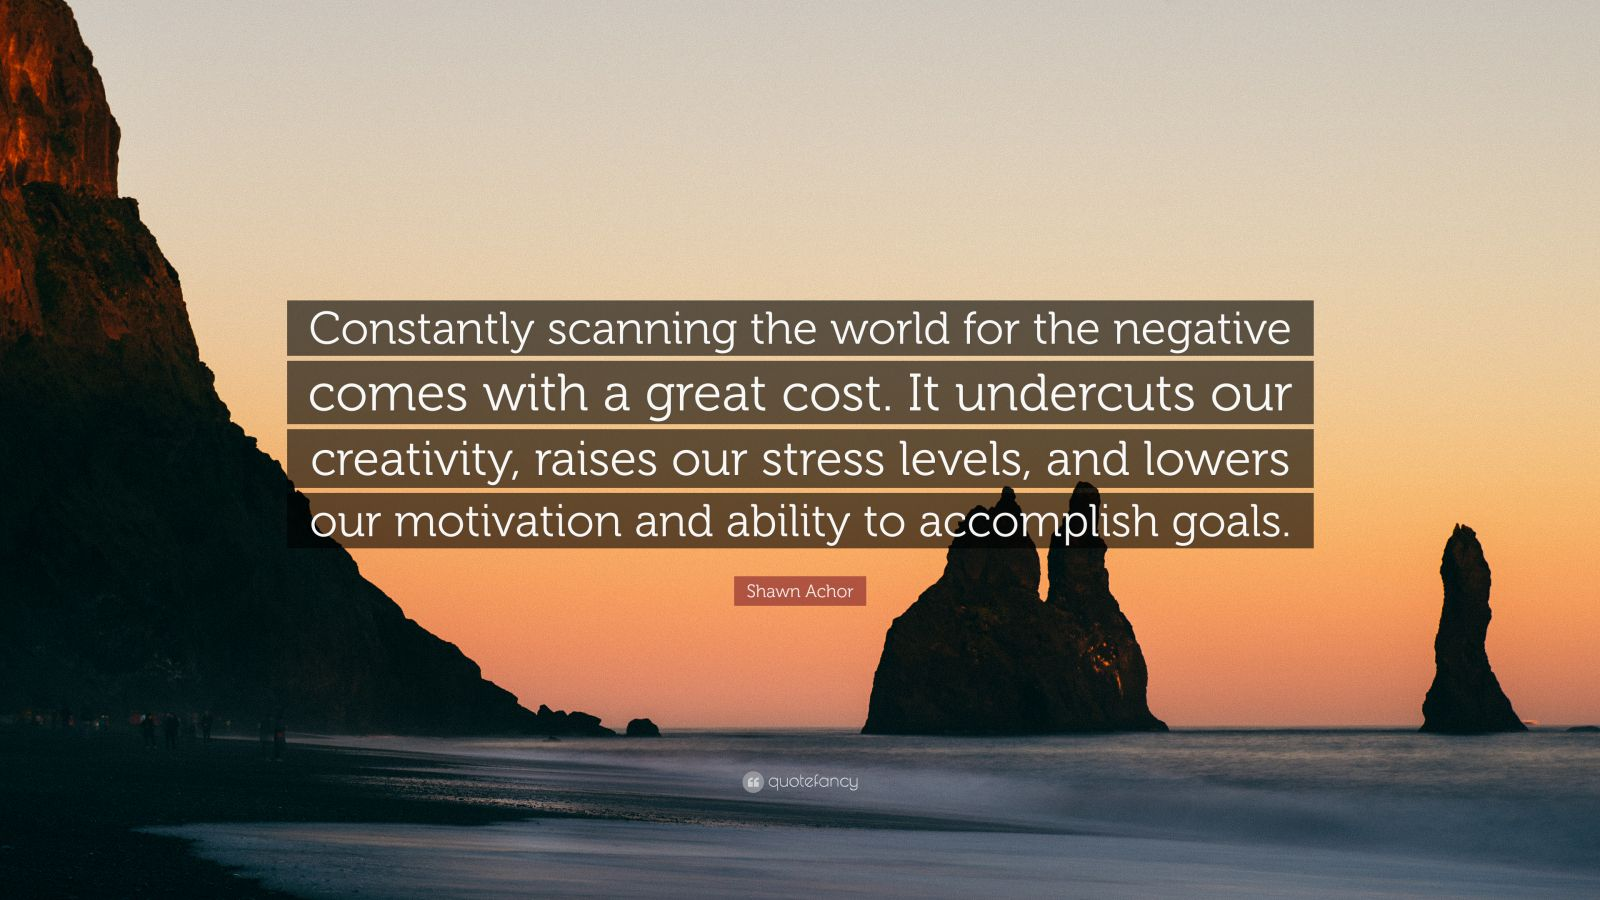 """Shawn Achor Quote: """"Constantly scanning the world for the negative comes with a great cost. It undercuts our creativity, raises our stress levels, and lowers our motivation and ability to accomplish goals."""""""